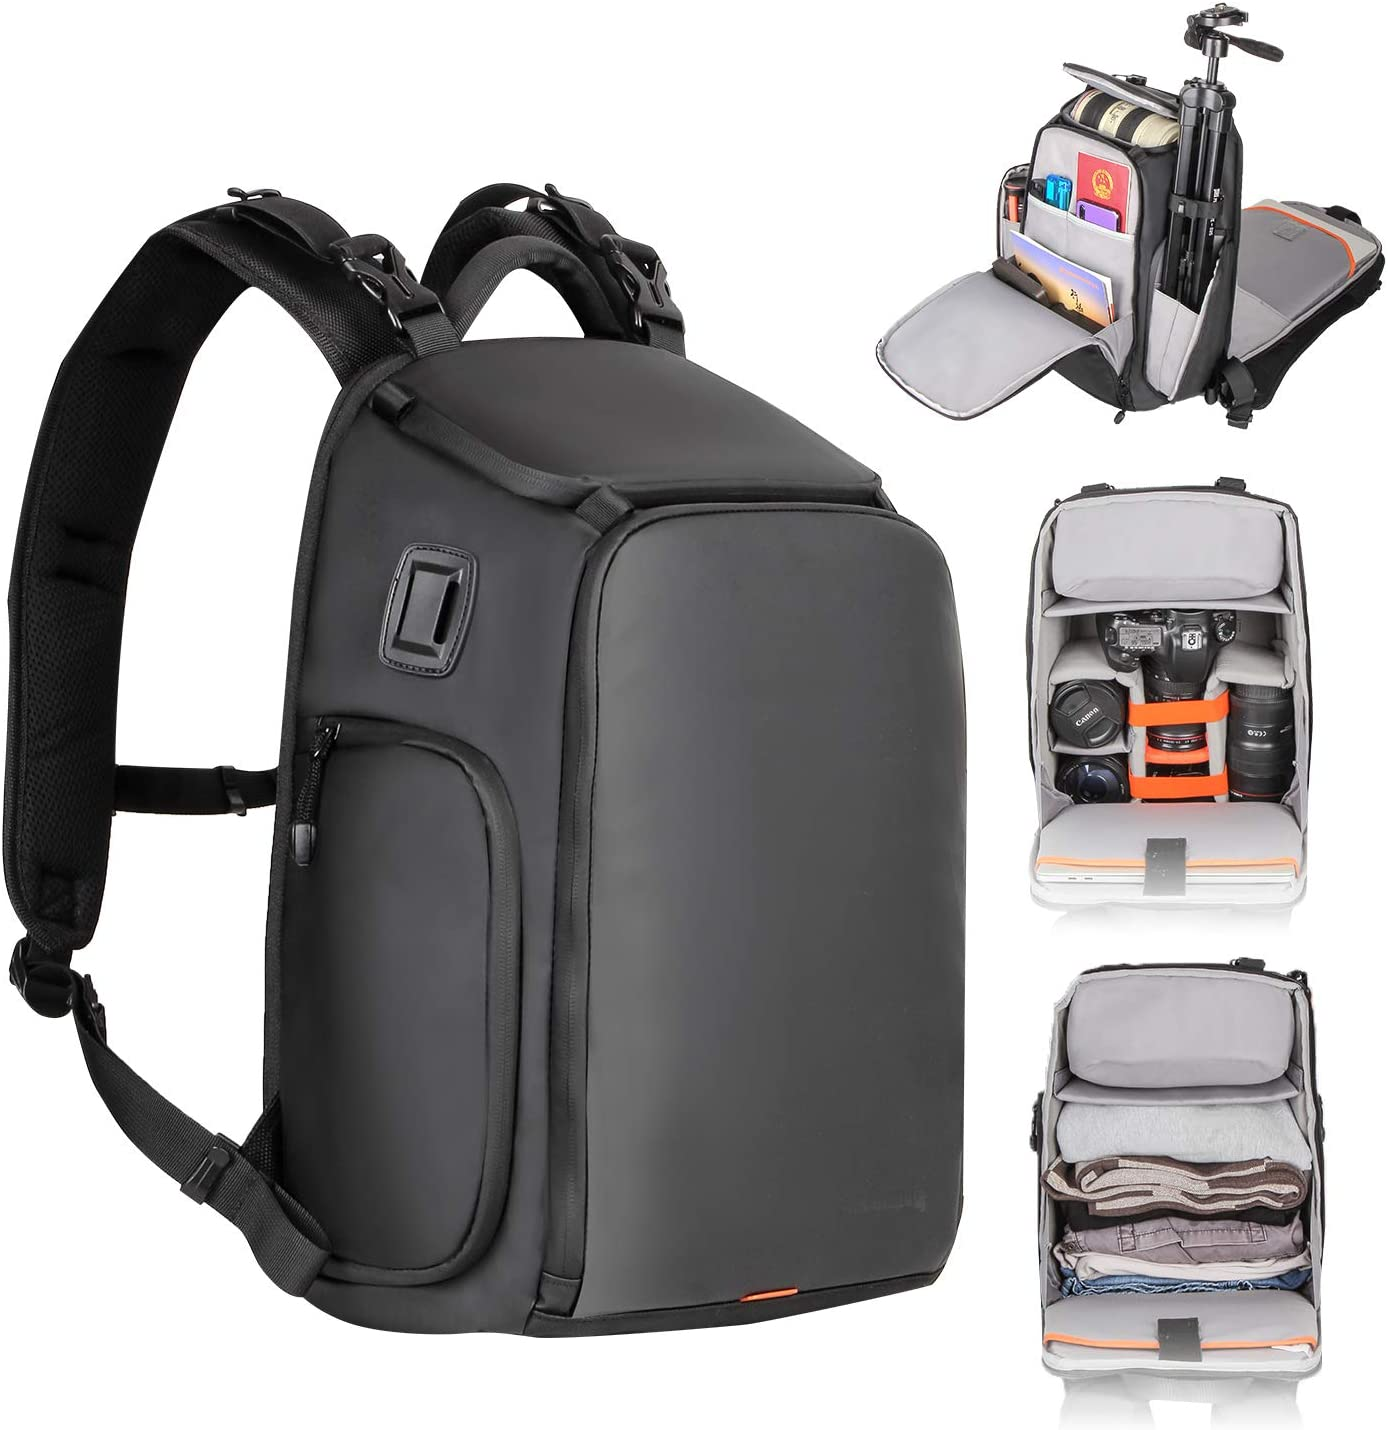 Besnfoto Small Camera Backpack Waterproof for SLR/DSLR Mirrorless Camera with Laptop Compartment Photographer Backpack Bag for Hiking Traveling with Rain Cover